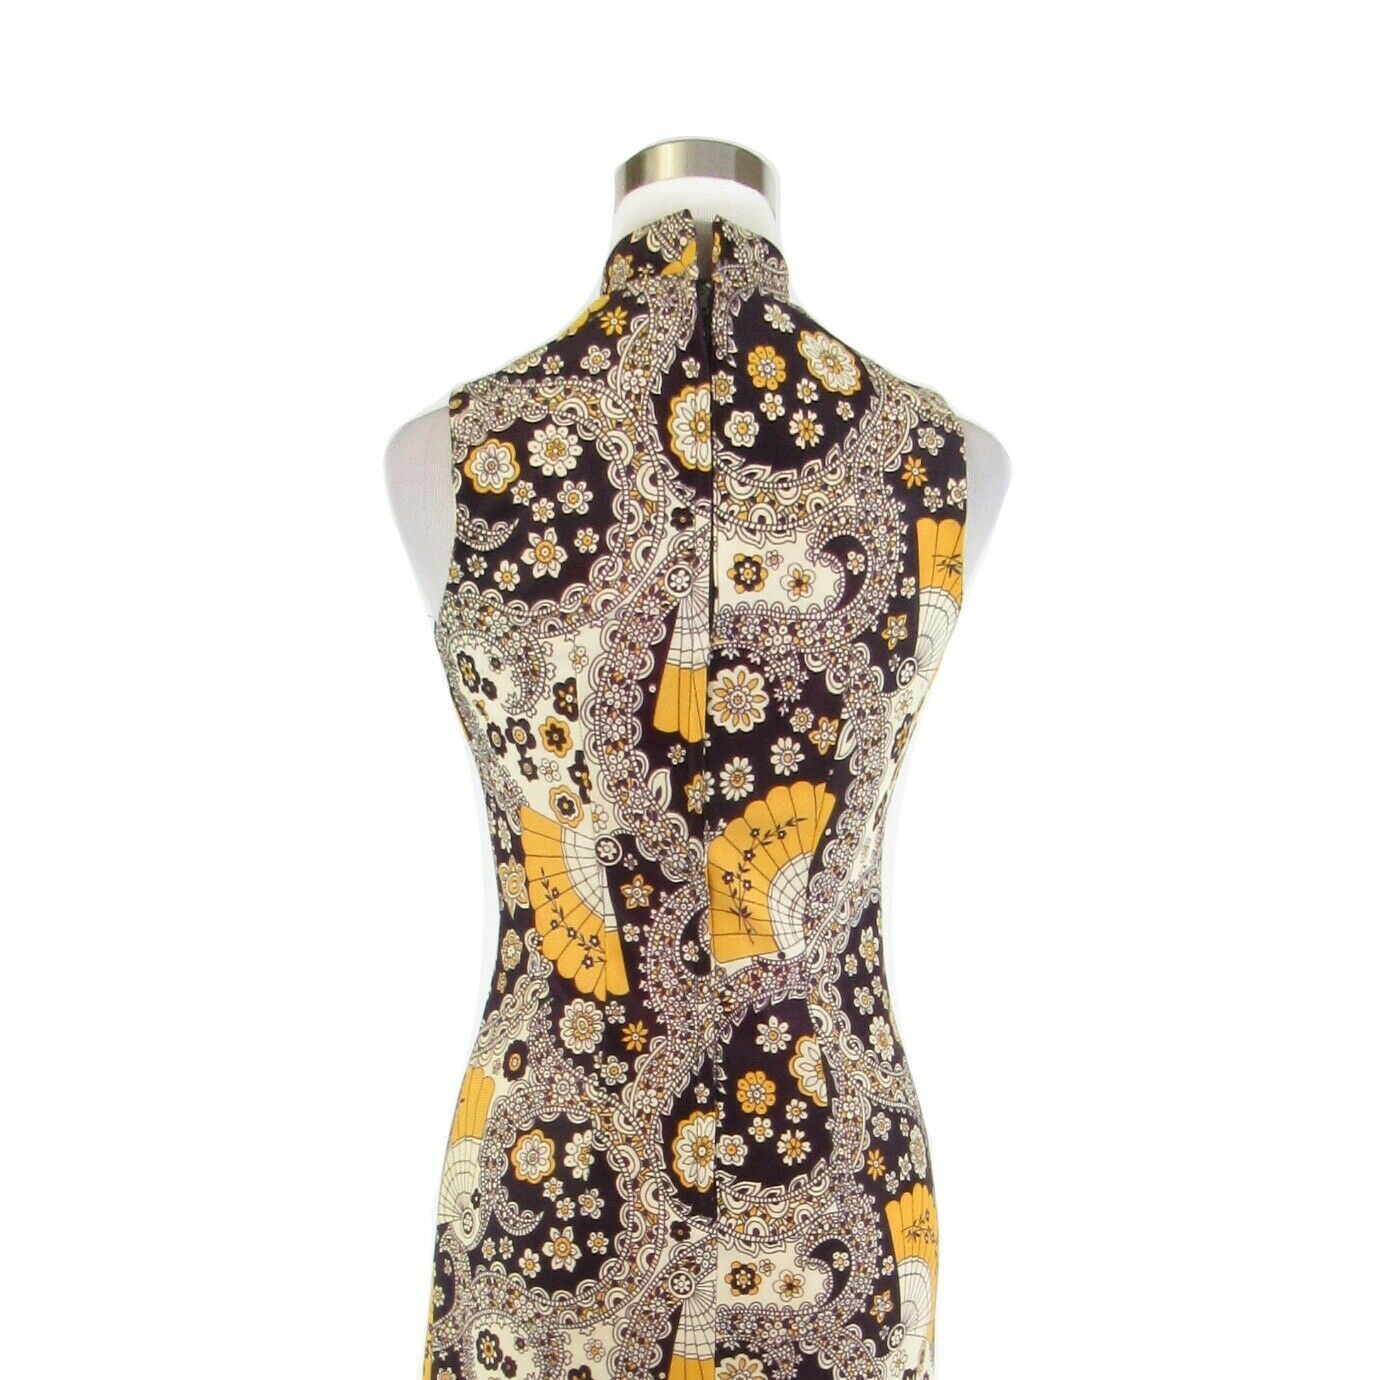 Midnight blue yellow paisley sleeveless vintage maxi dress S image 8